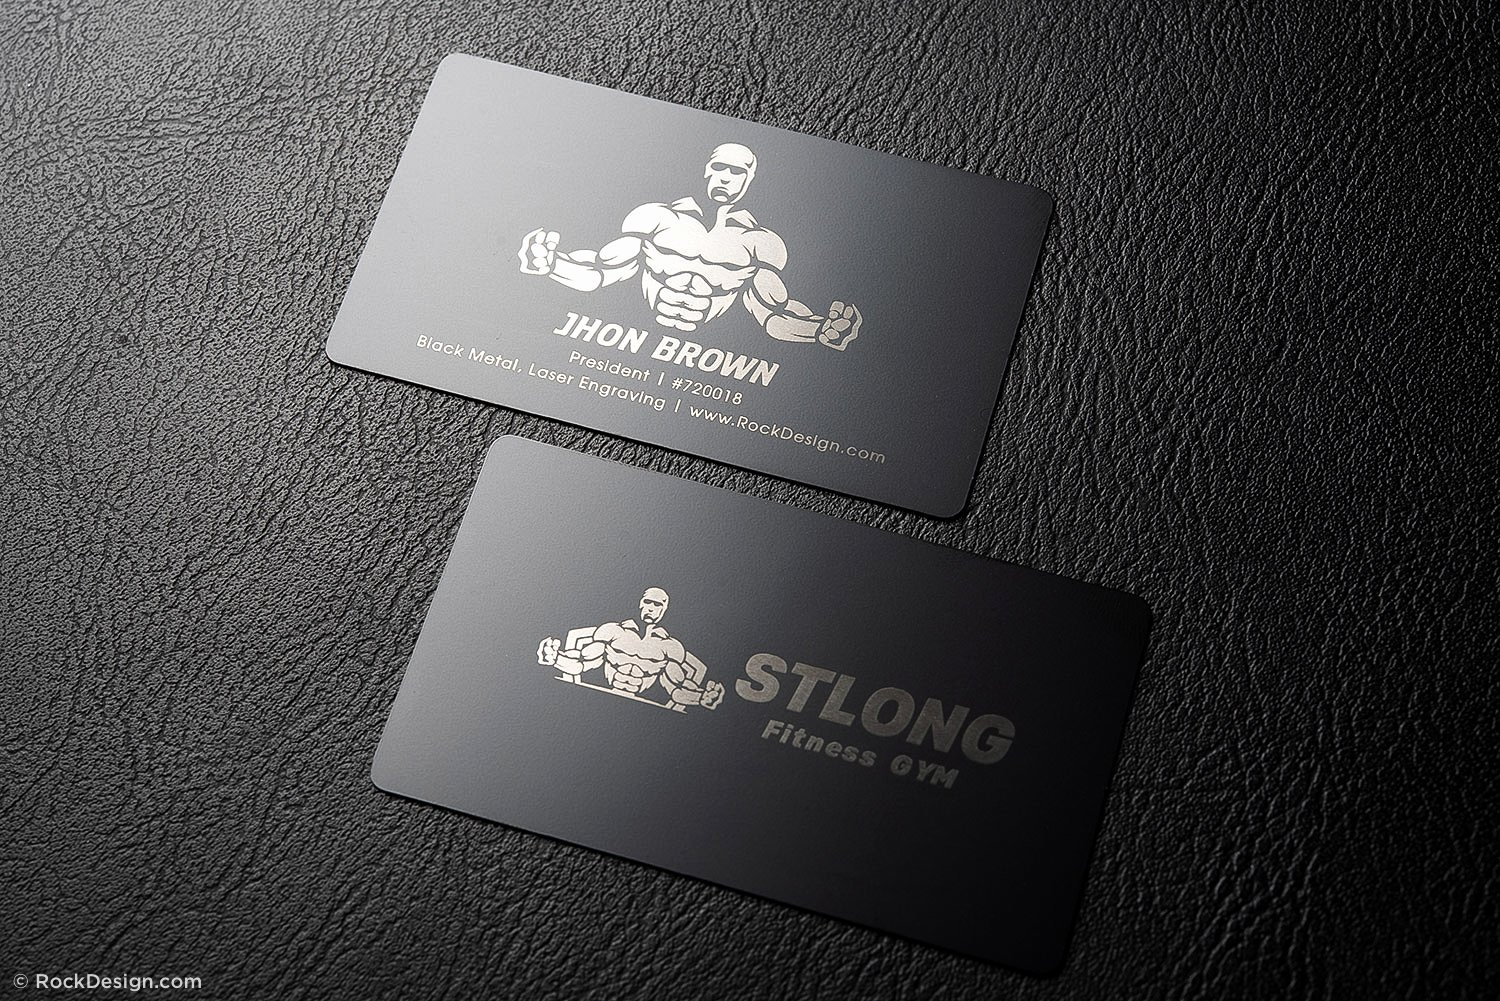 Personal Training Business Cards Elegant Bold Fitness Quick Black Metal Business Card Template Stlong